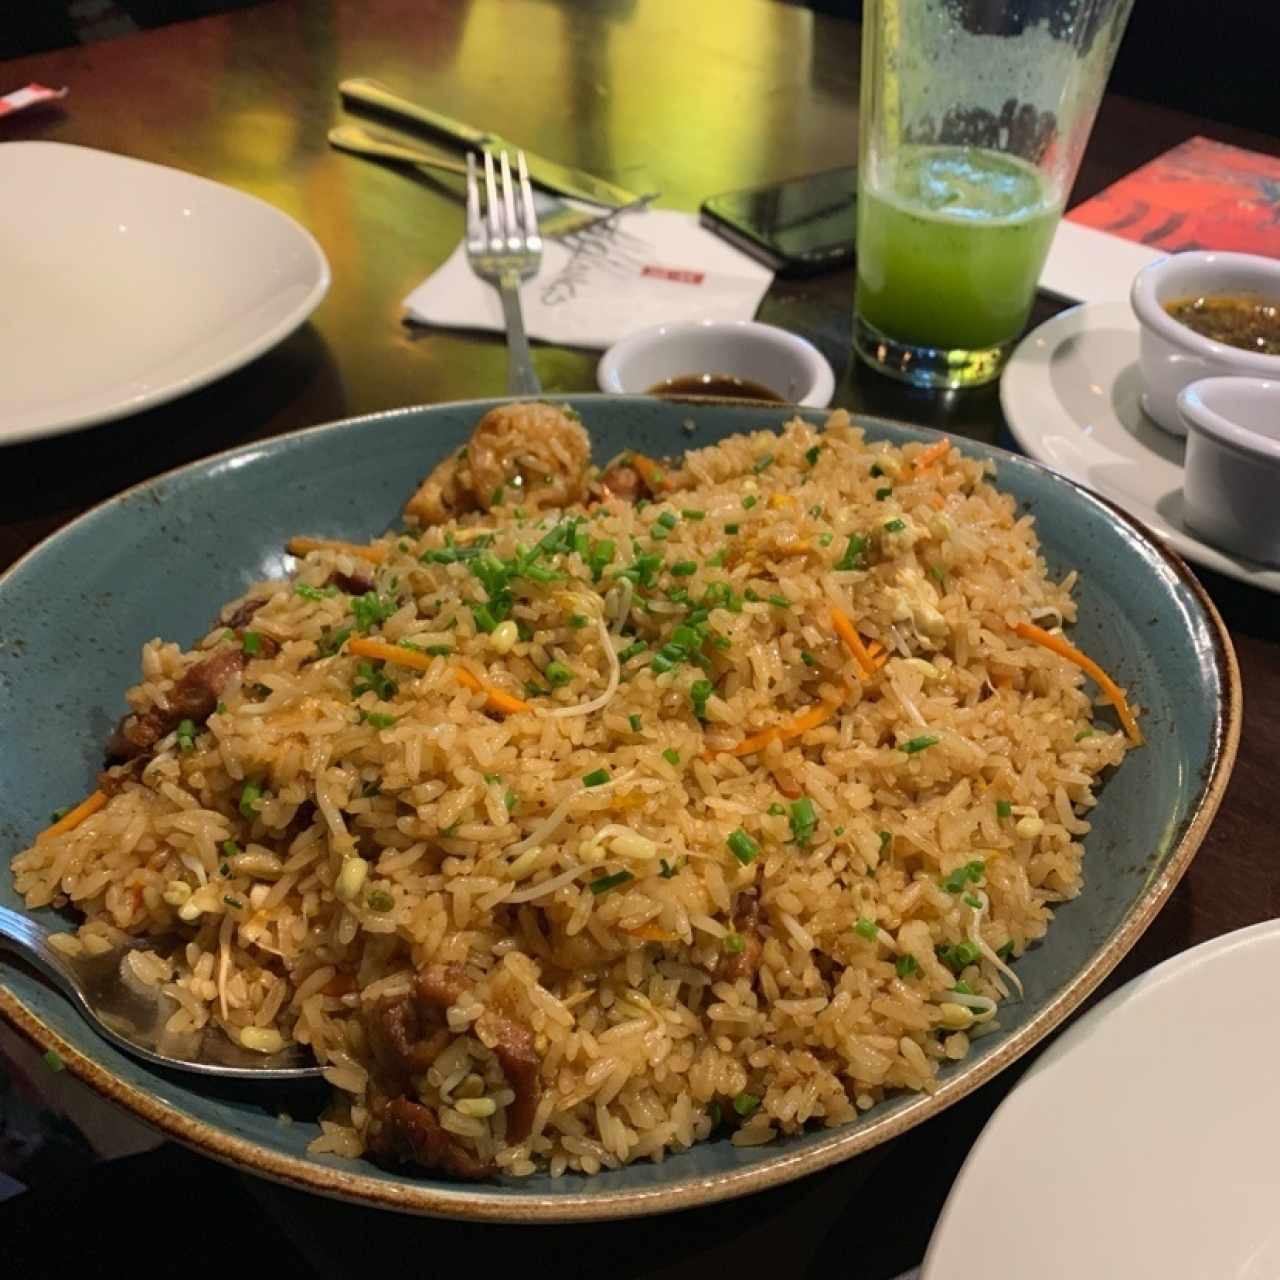 P.F. changs rice - arroz combinacion